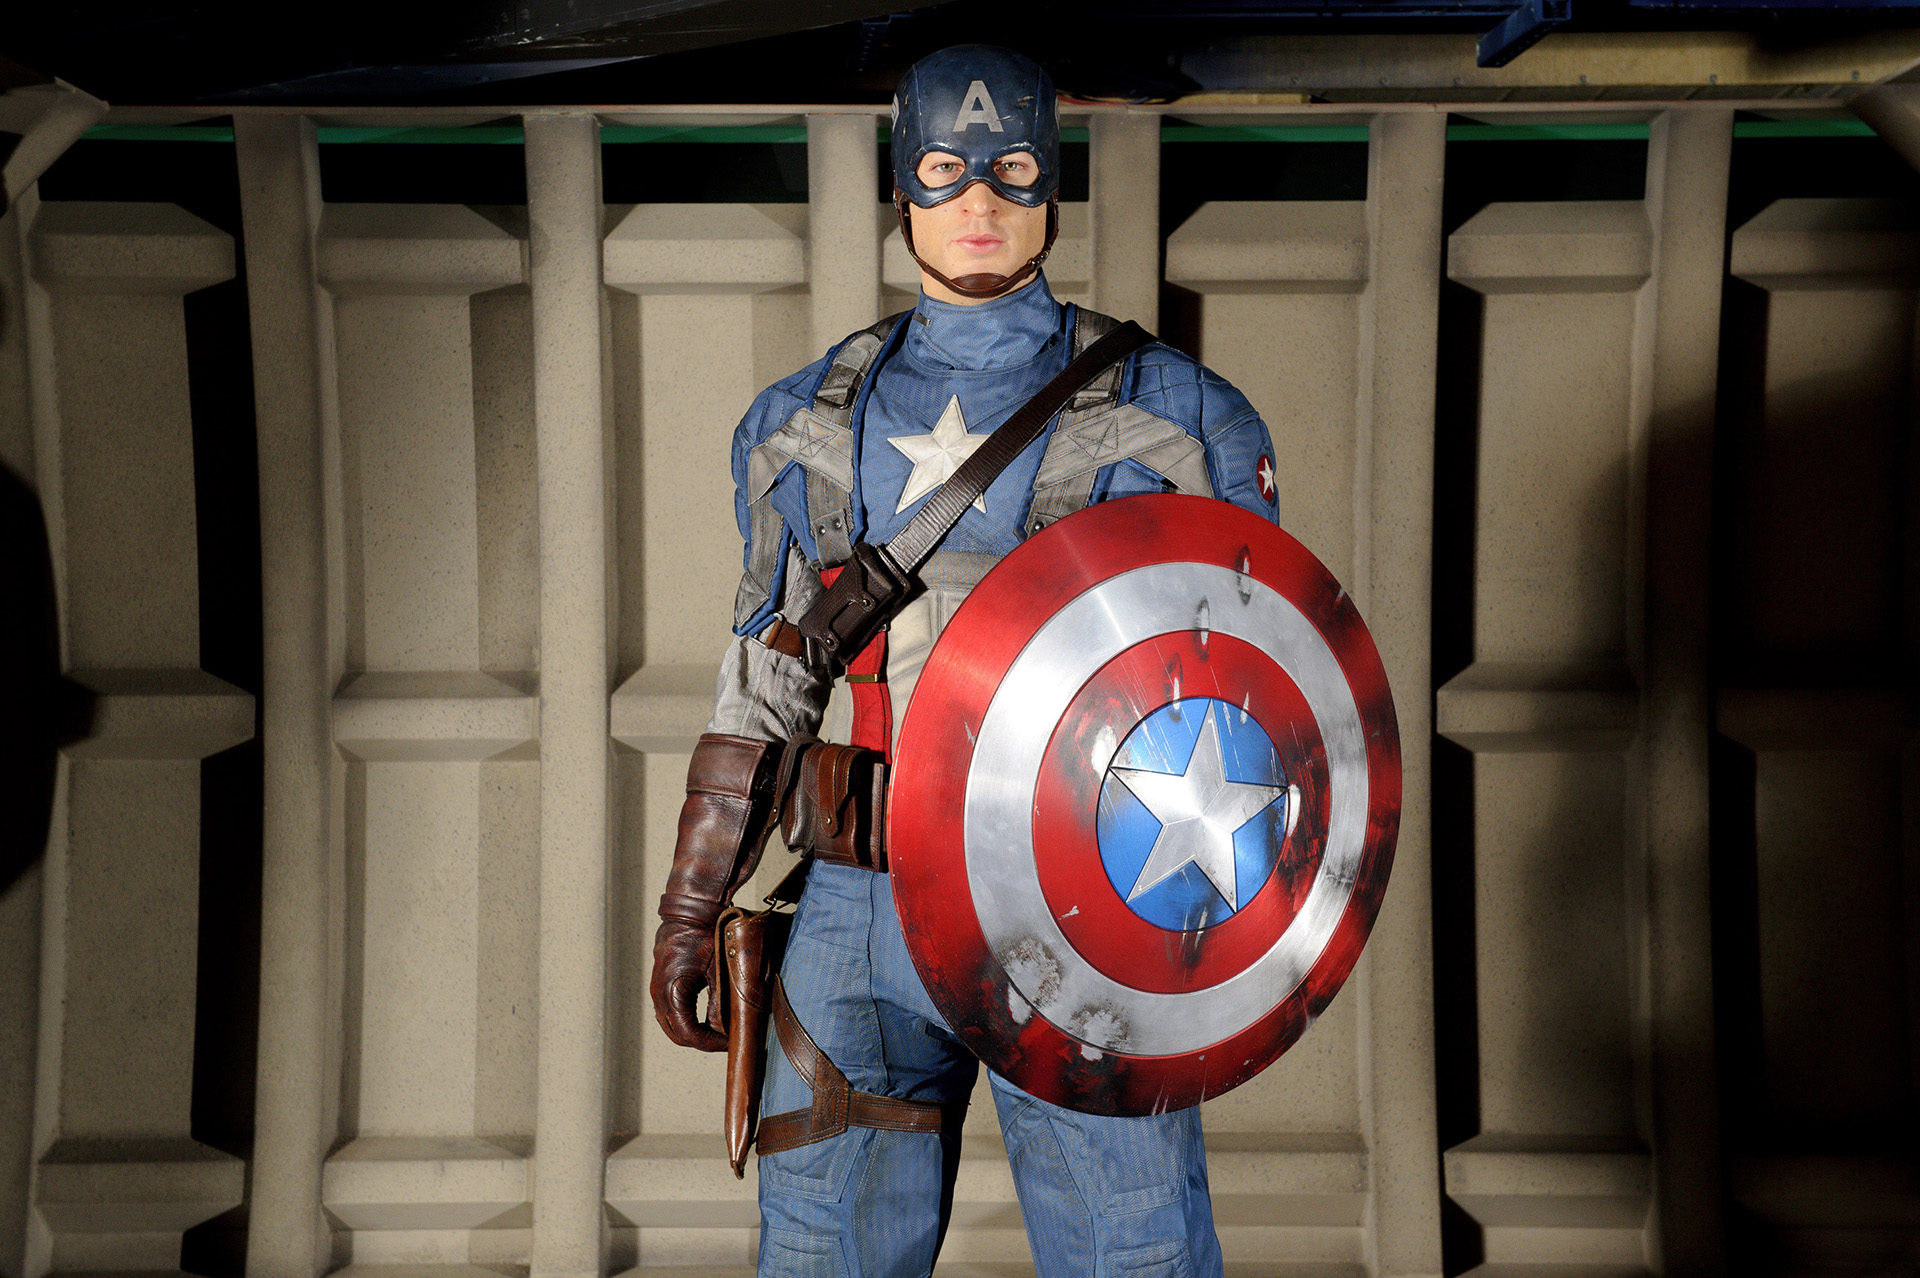 Captain America's figure at Madame Tussauds London